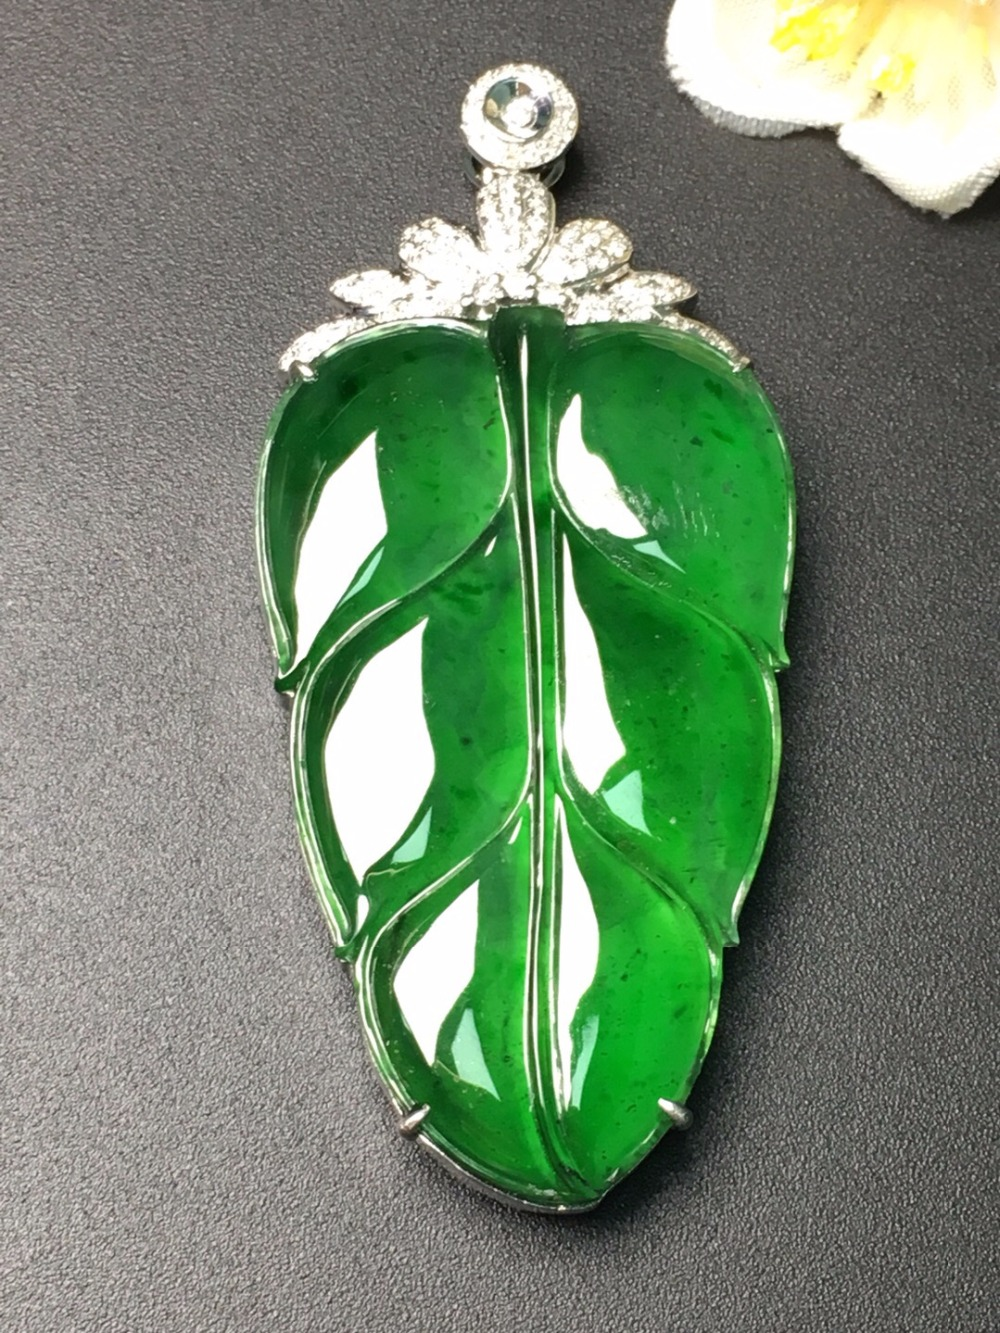 Carving Jadite Fine Jewelry Collection Real 18K Rose Gold Natural Green Jade Gemstone Leaf Shape Pendant Necklace Fine Pendants fine jewelry collection real 18k white gold natural green jade gemstone animal shape pendant necklace fine pendants